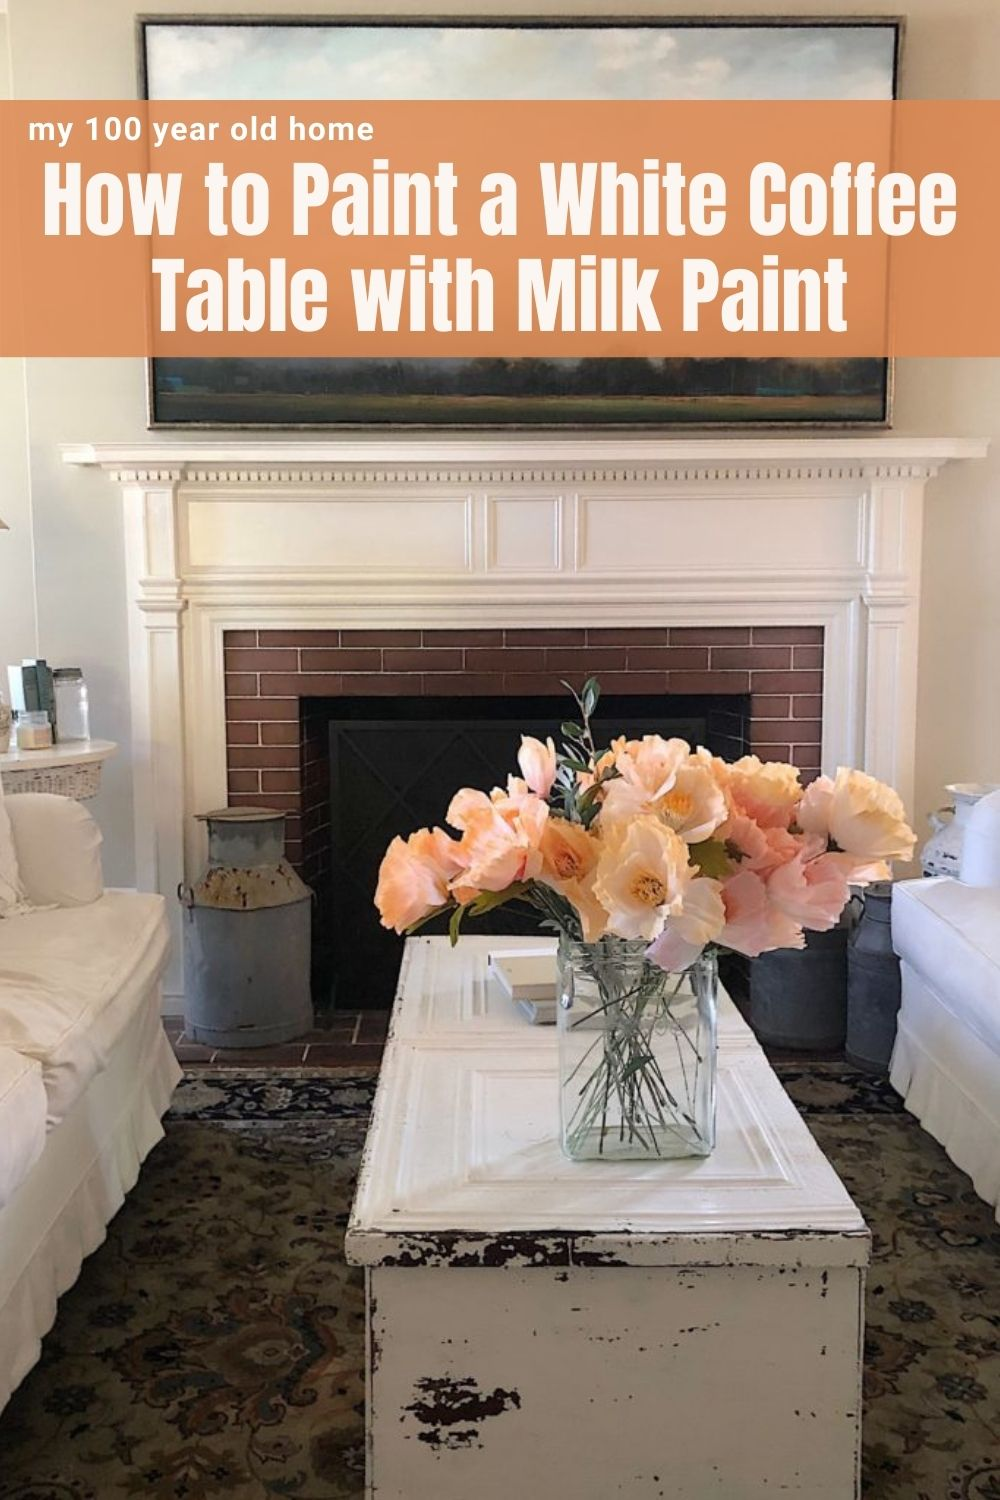 So many of you asked about our white coffee table that I painted with milk paint! I thought it might be fun to share my DIY tutorial.